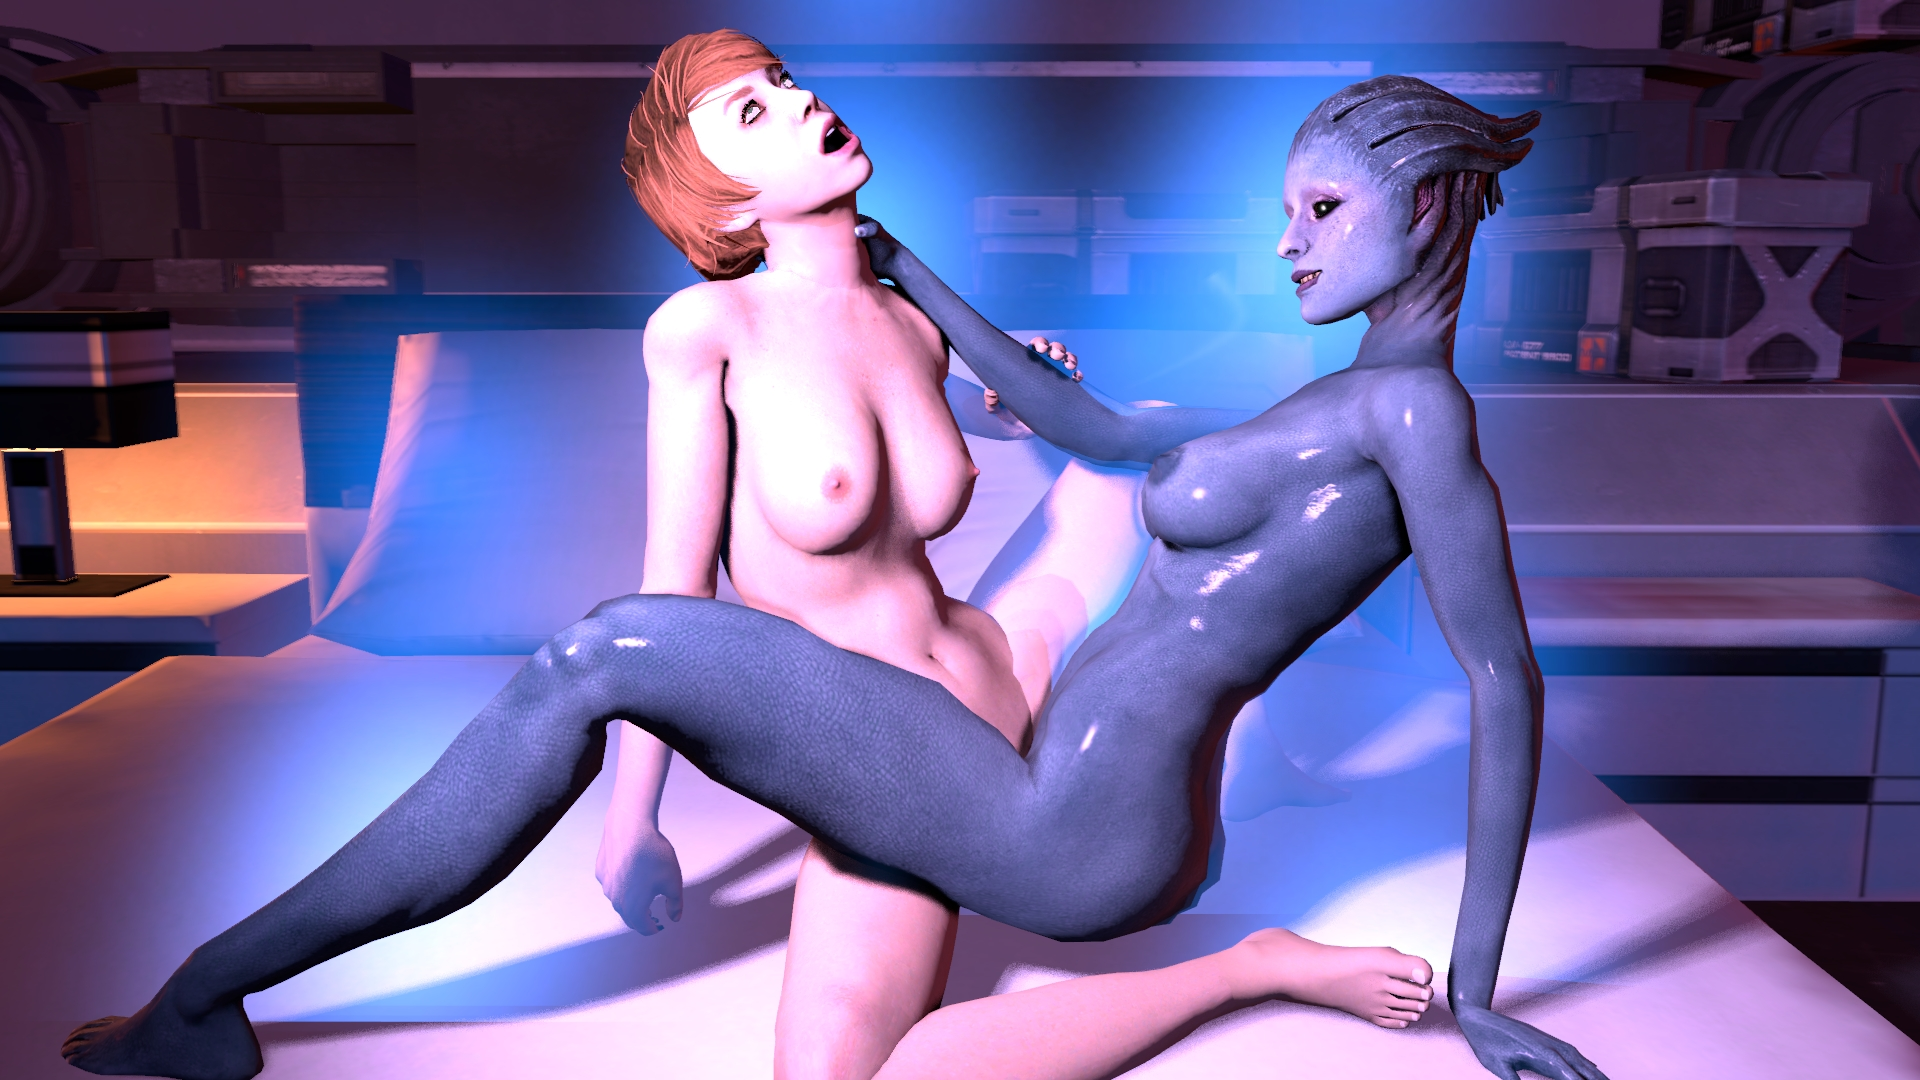 Mass effect 2 erotic naked с'р°р»naked adult pretty girl